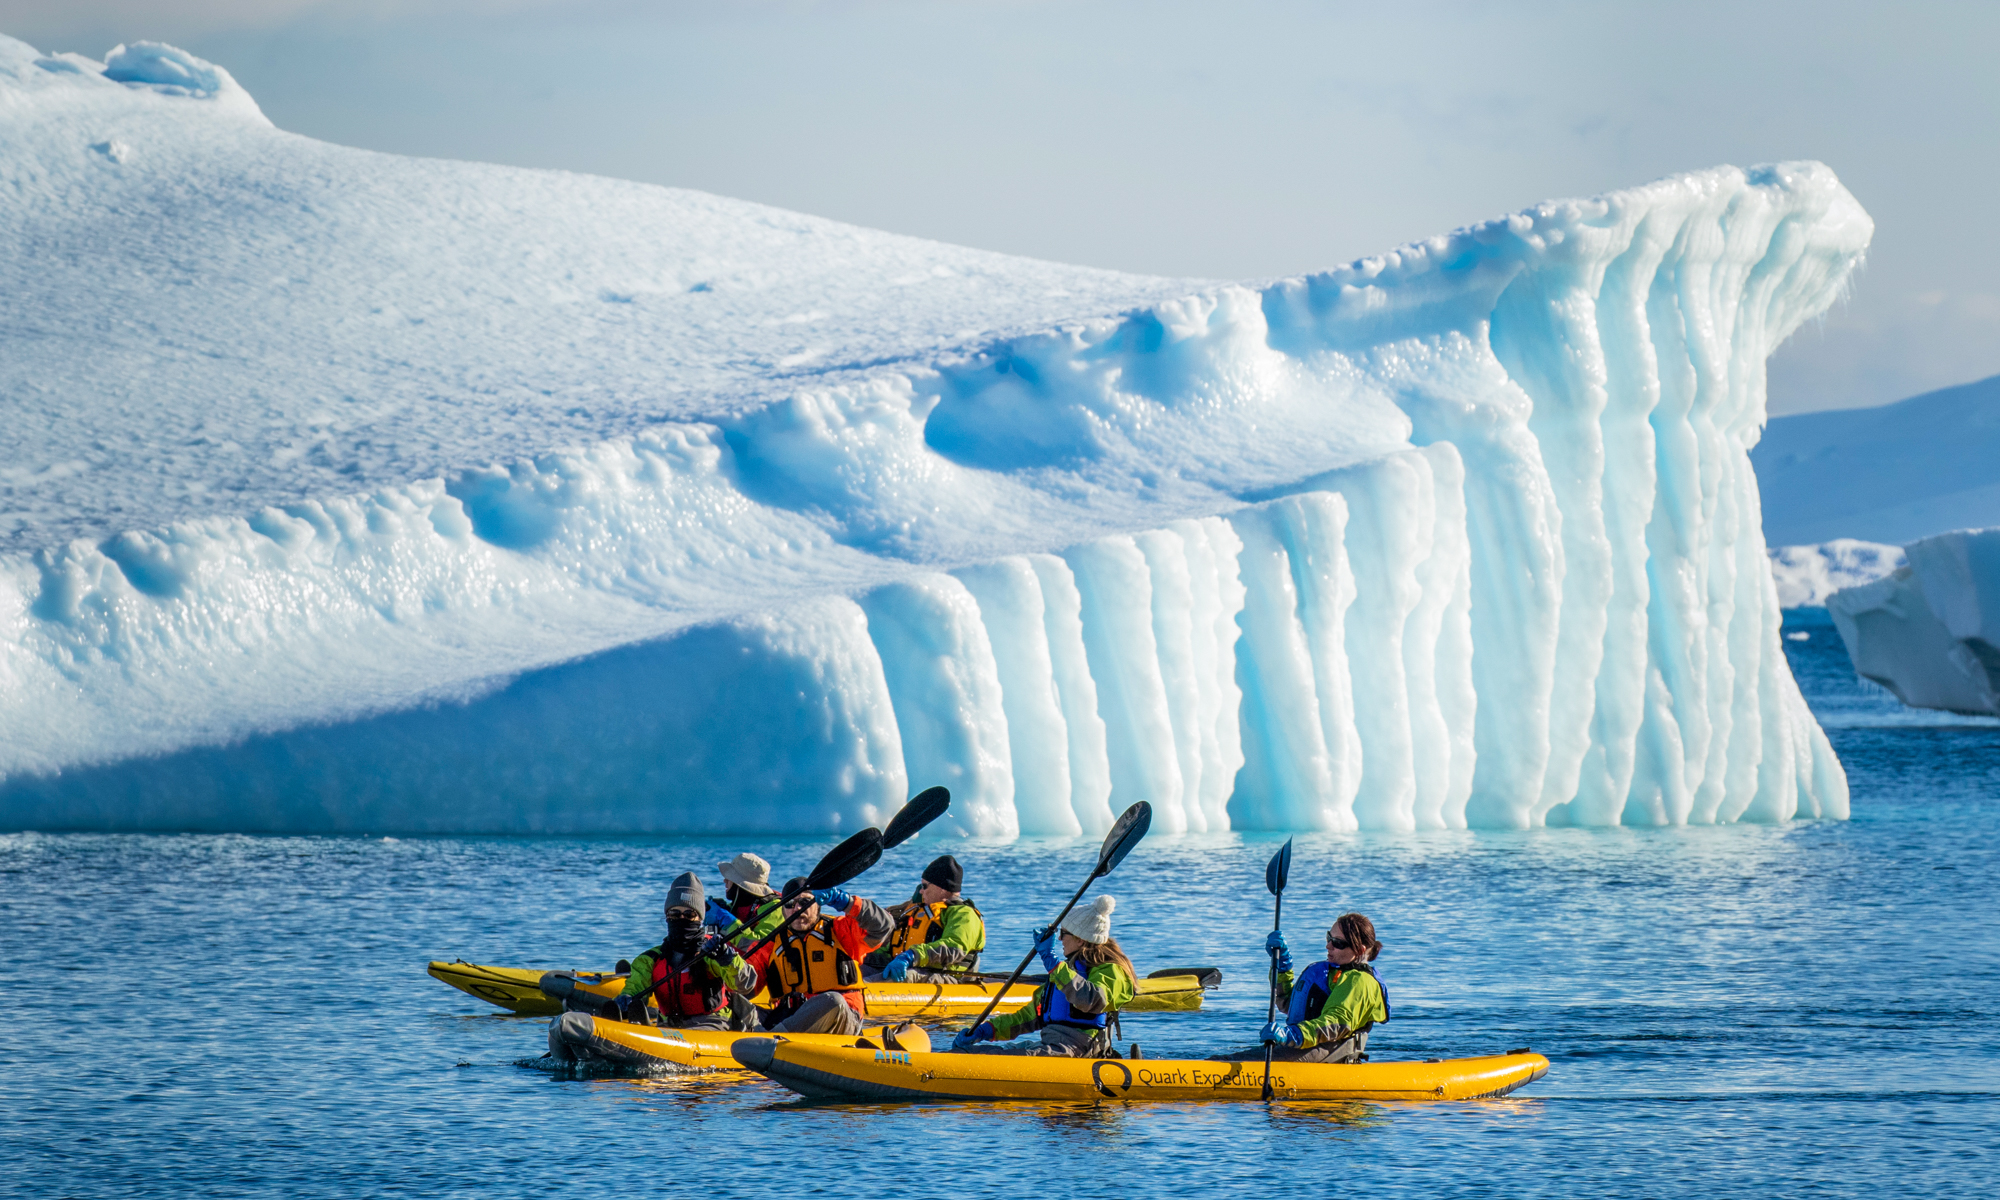 group of people paddling in yellow inflatable kayaks near a blue and white iceberg in Antarctica